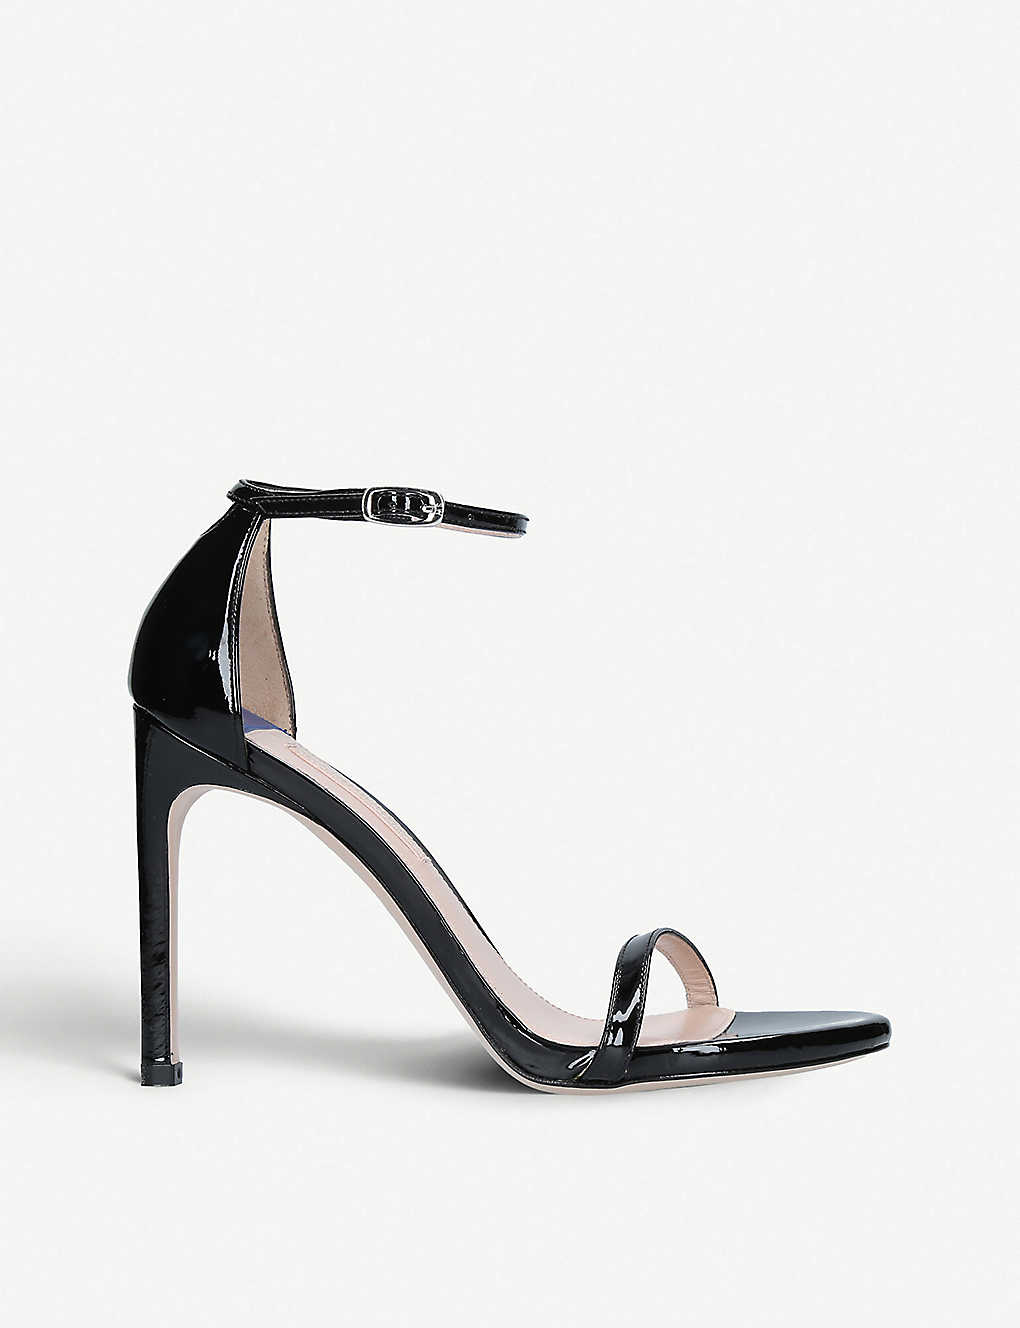 STUART WEITZMAN: Nudistsong 100 patent leather sandals